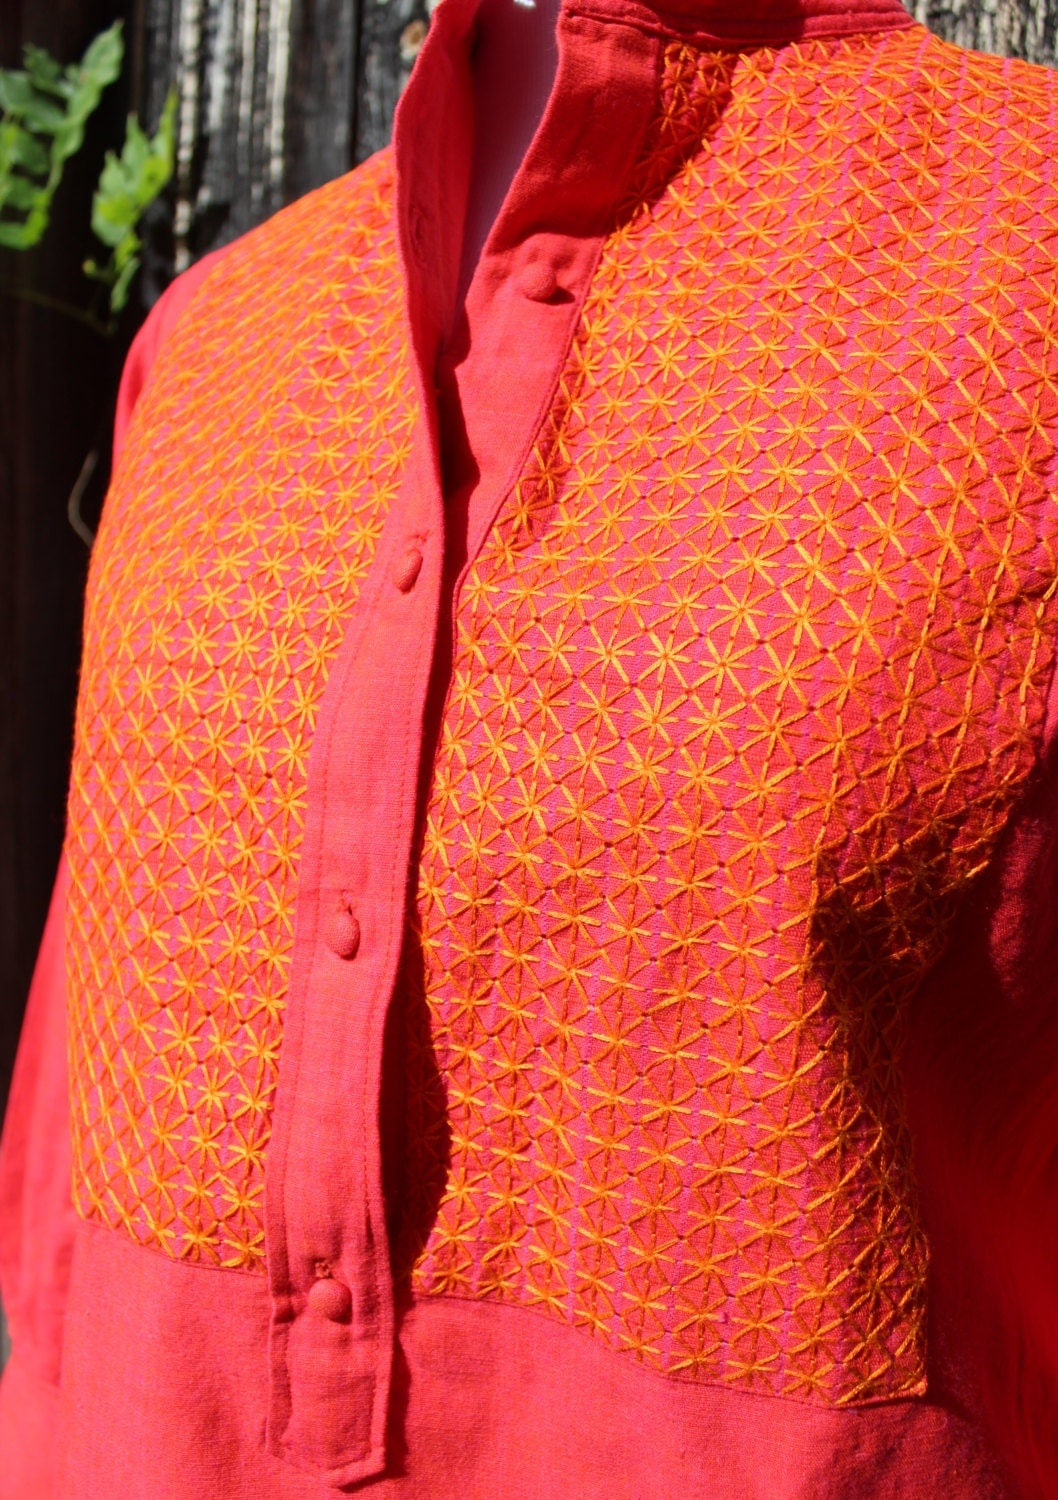 Salmon Colored Herringbone Blazer: Orange And Salmon Colored Hand Embroidered Blouse For A Shop